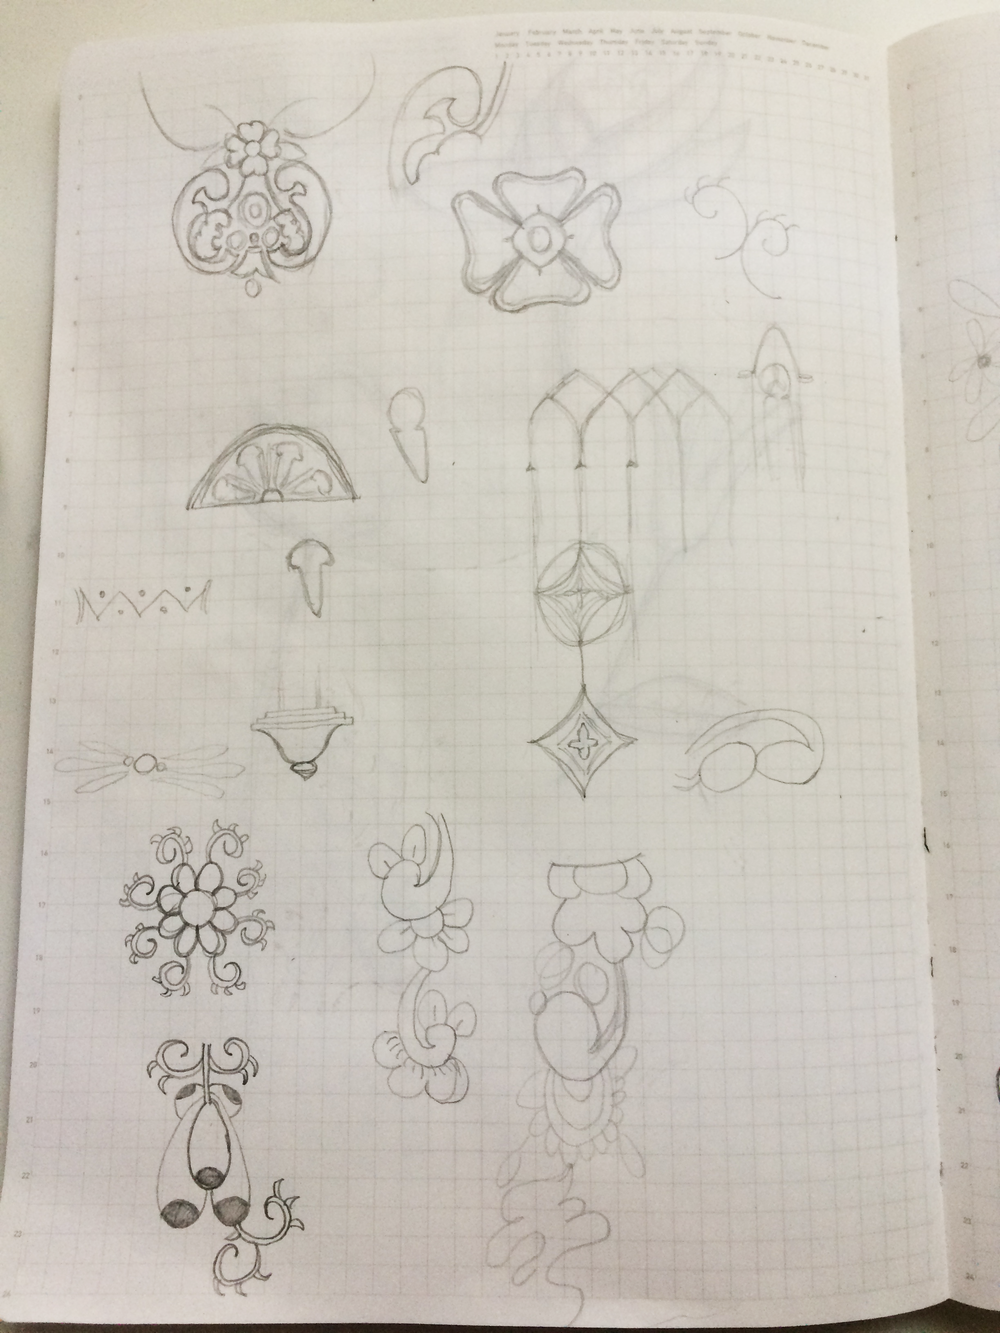 LOGO SKETCHES 04.png